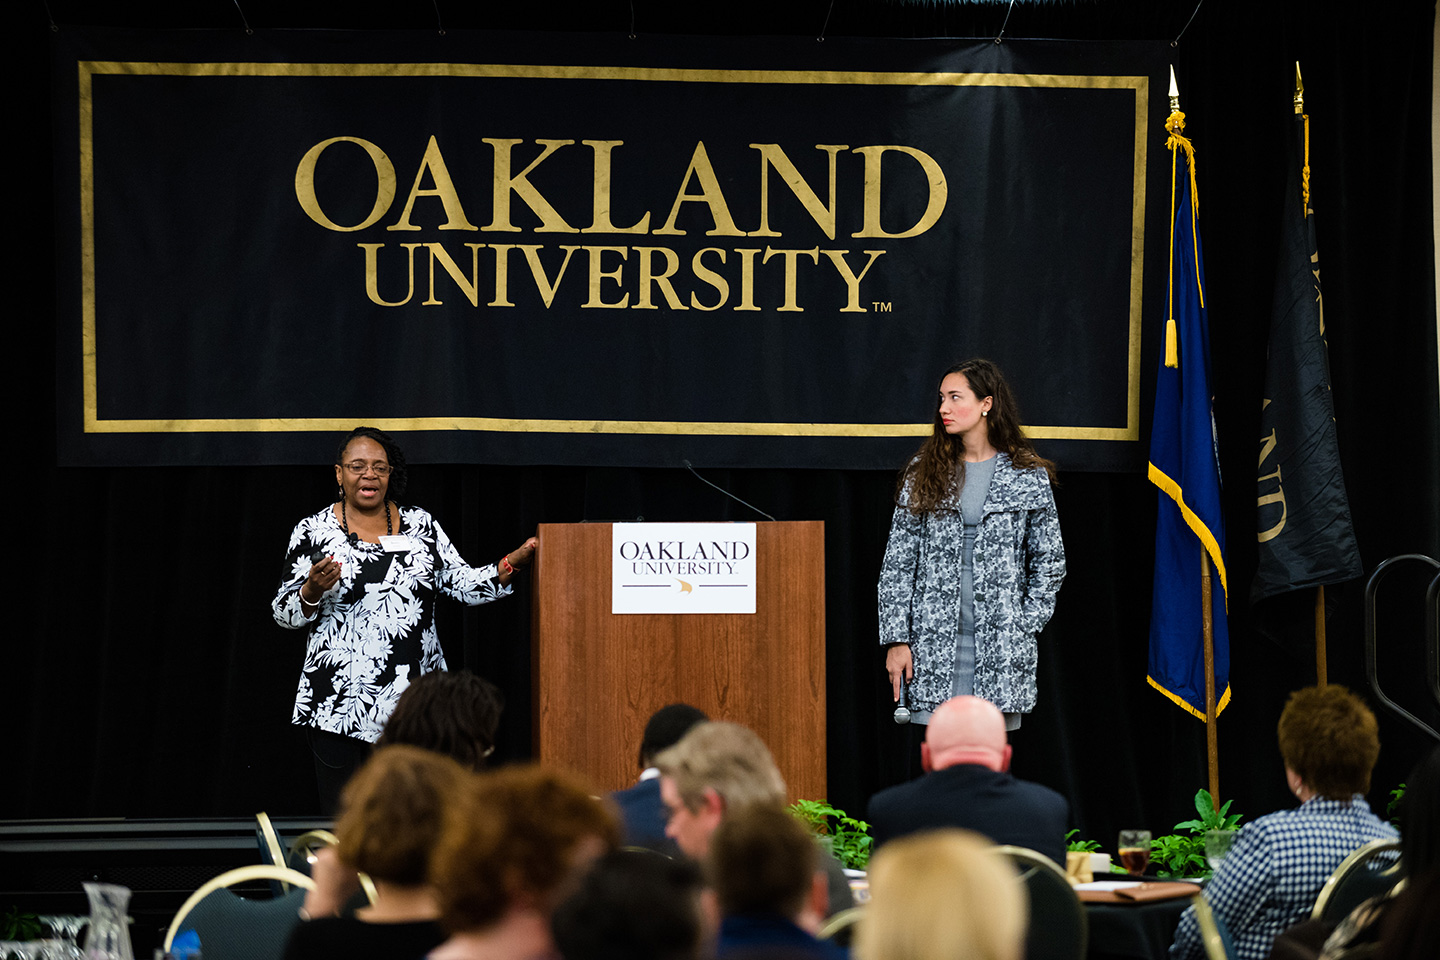 OU diversity conference urges participants to 'stand up, stand strong, stand together'